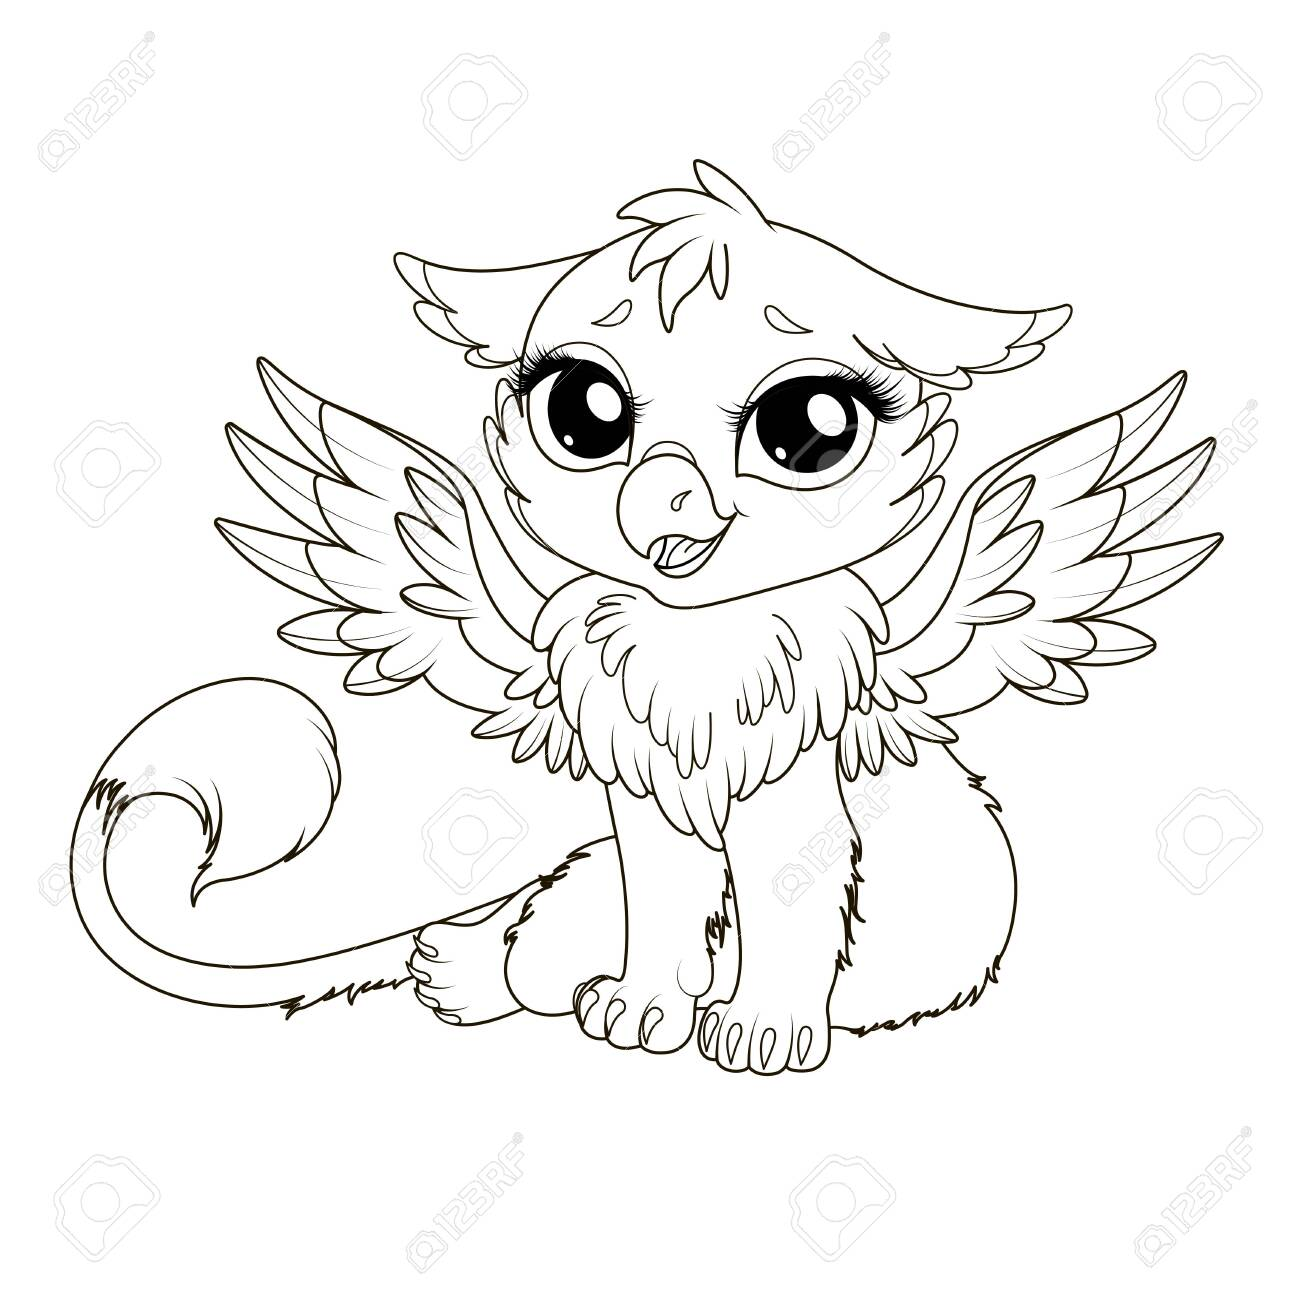 Wobbly Eyes Die Cut Coloring Book Stock Vector (Royalty Free ... | 1300x1300